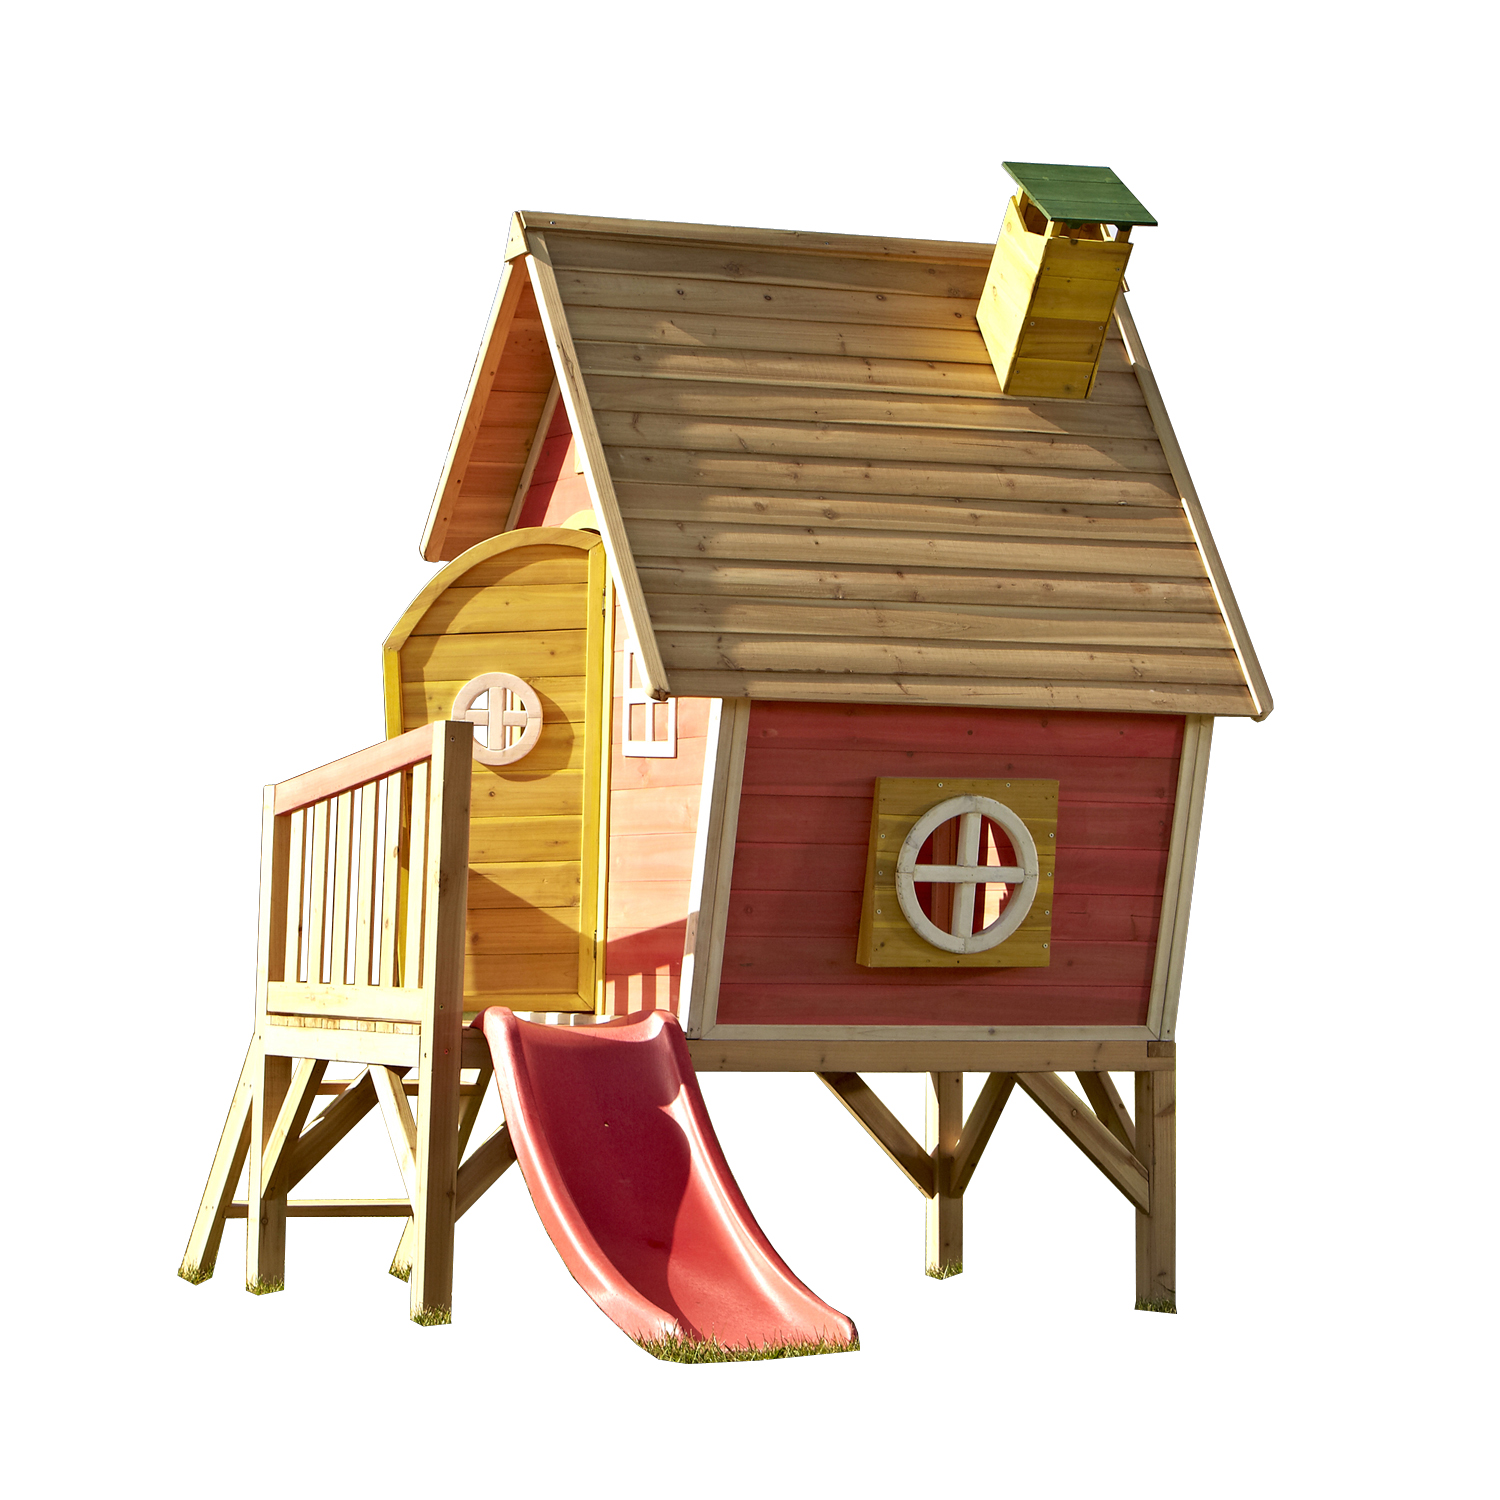 Swing-N-Slide Hide and Slide Wooden Playhouse with Slide, Red and Yellow by Swing-n-Slide